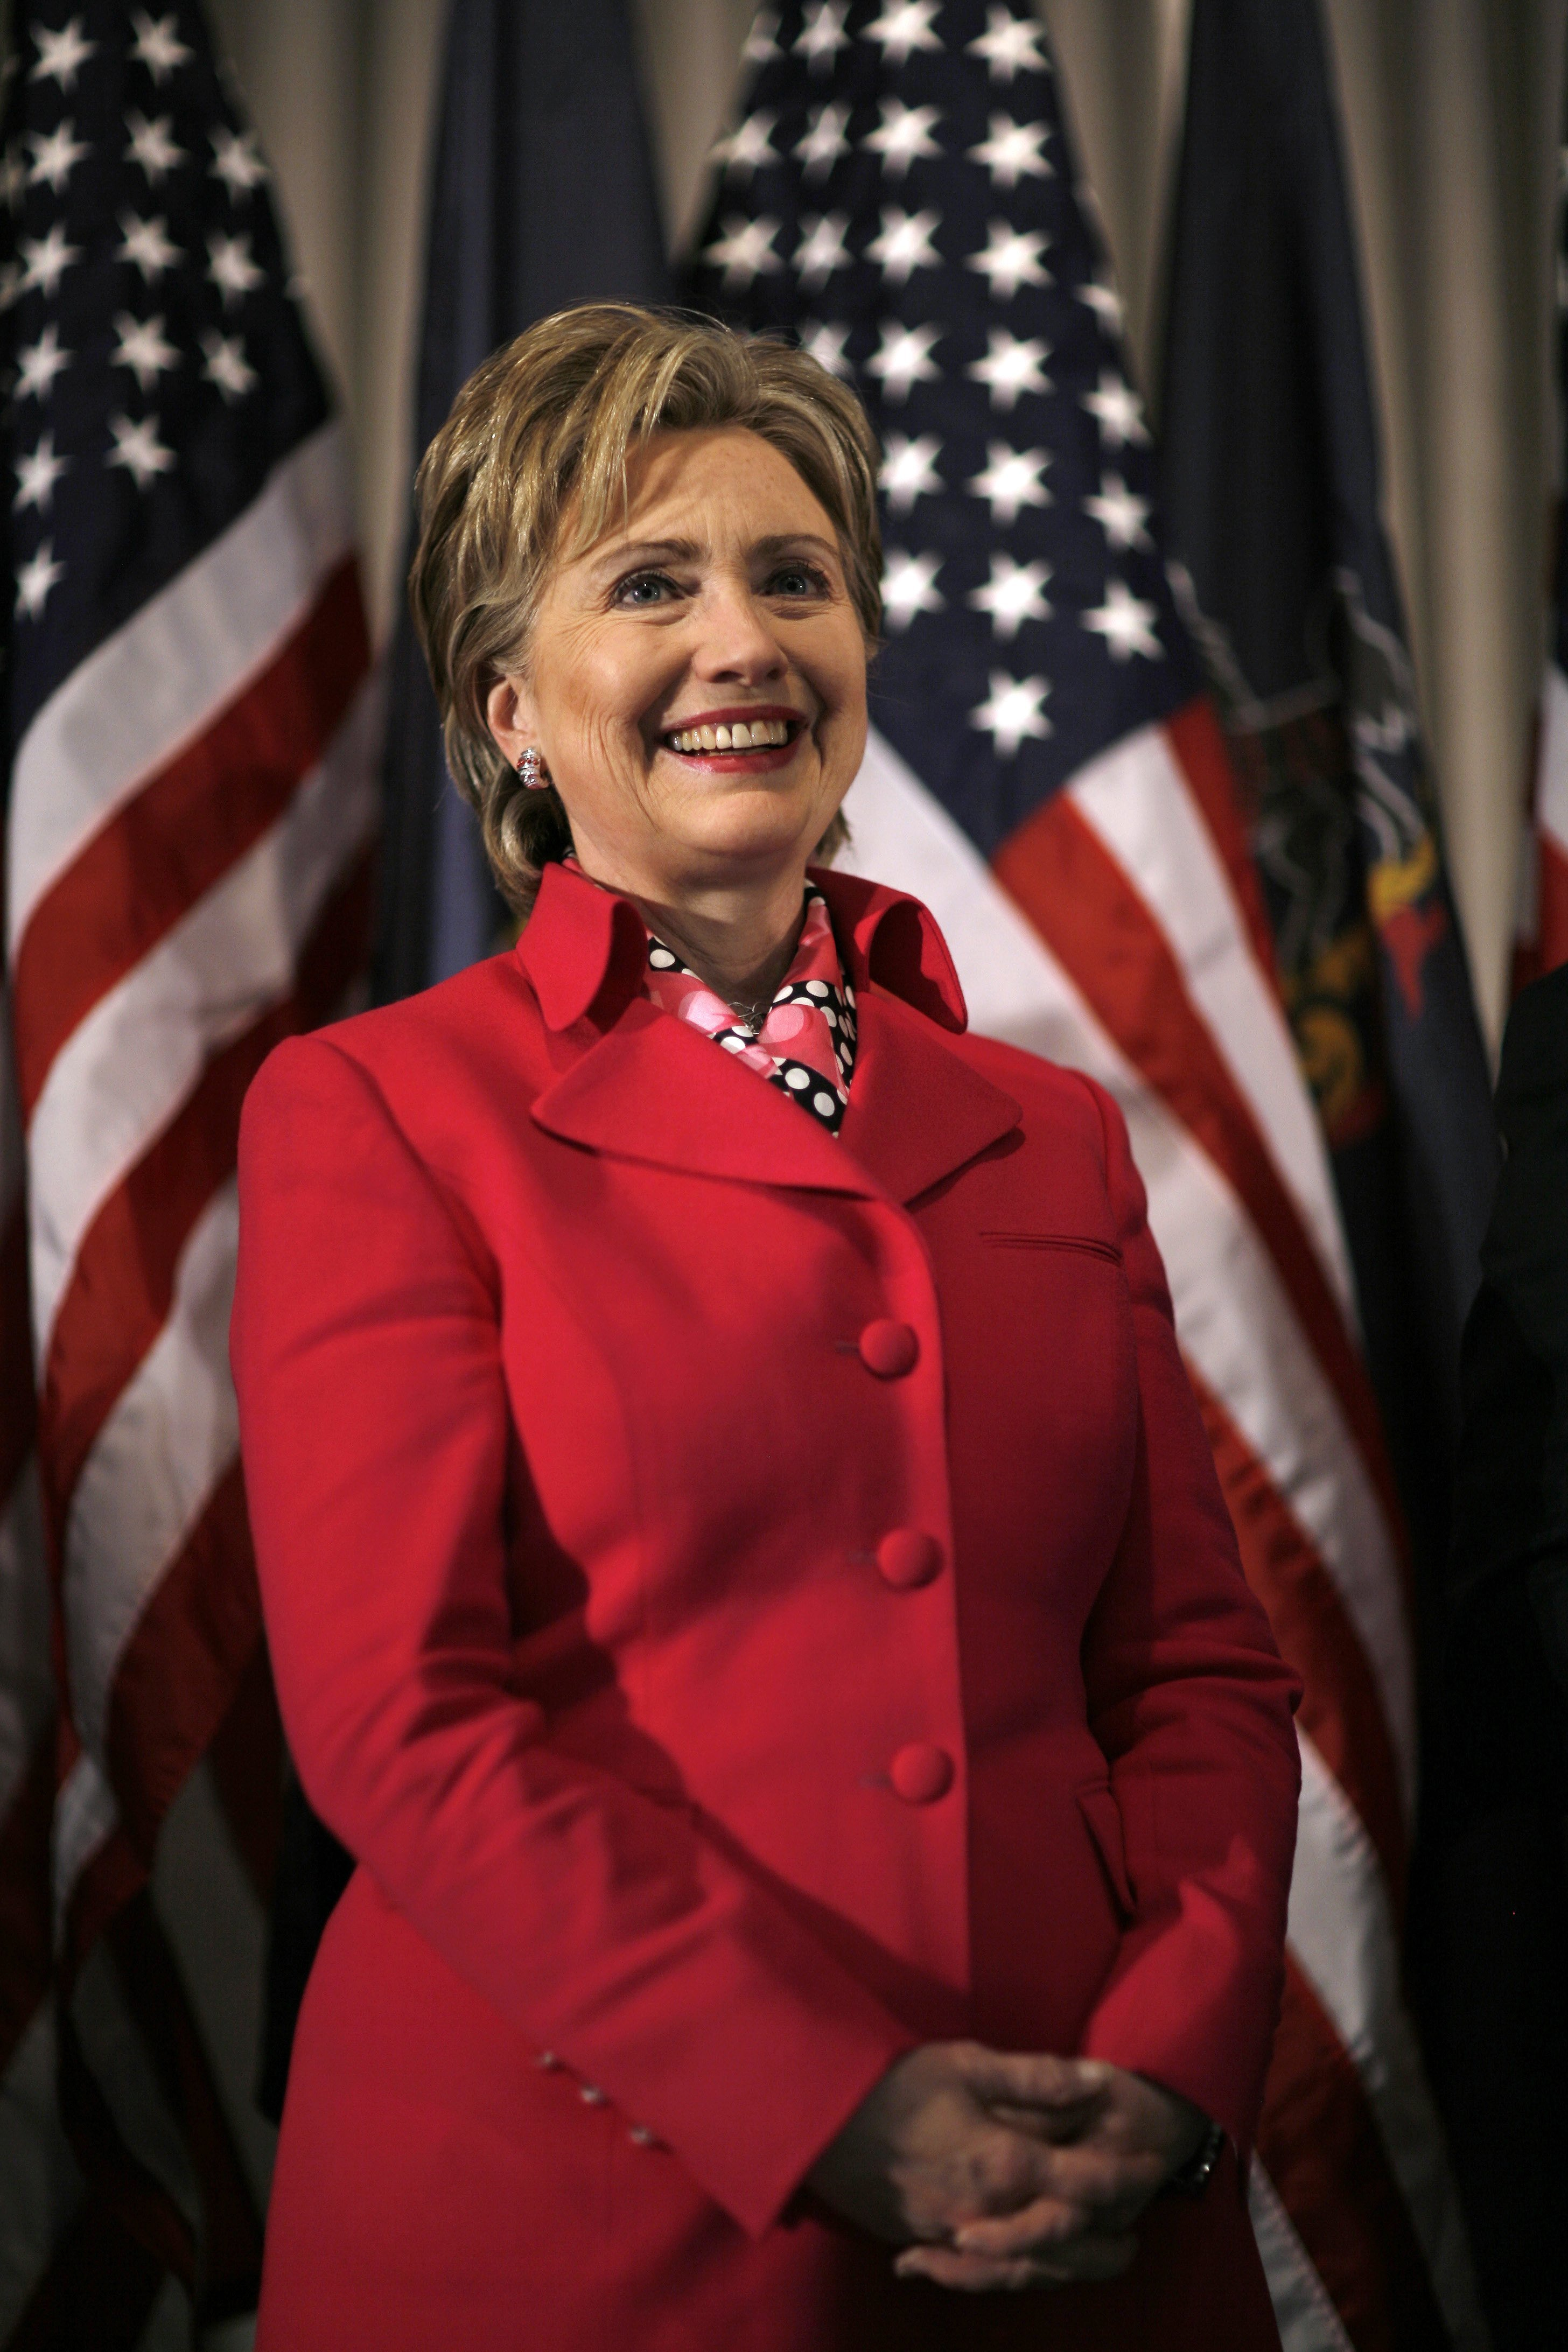 Hillary Clinton during her campaign | Image: Getty Images